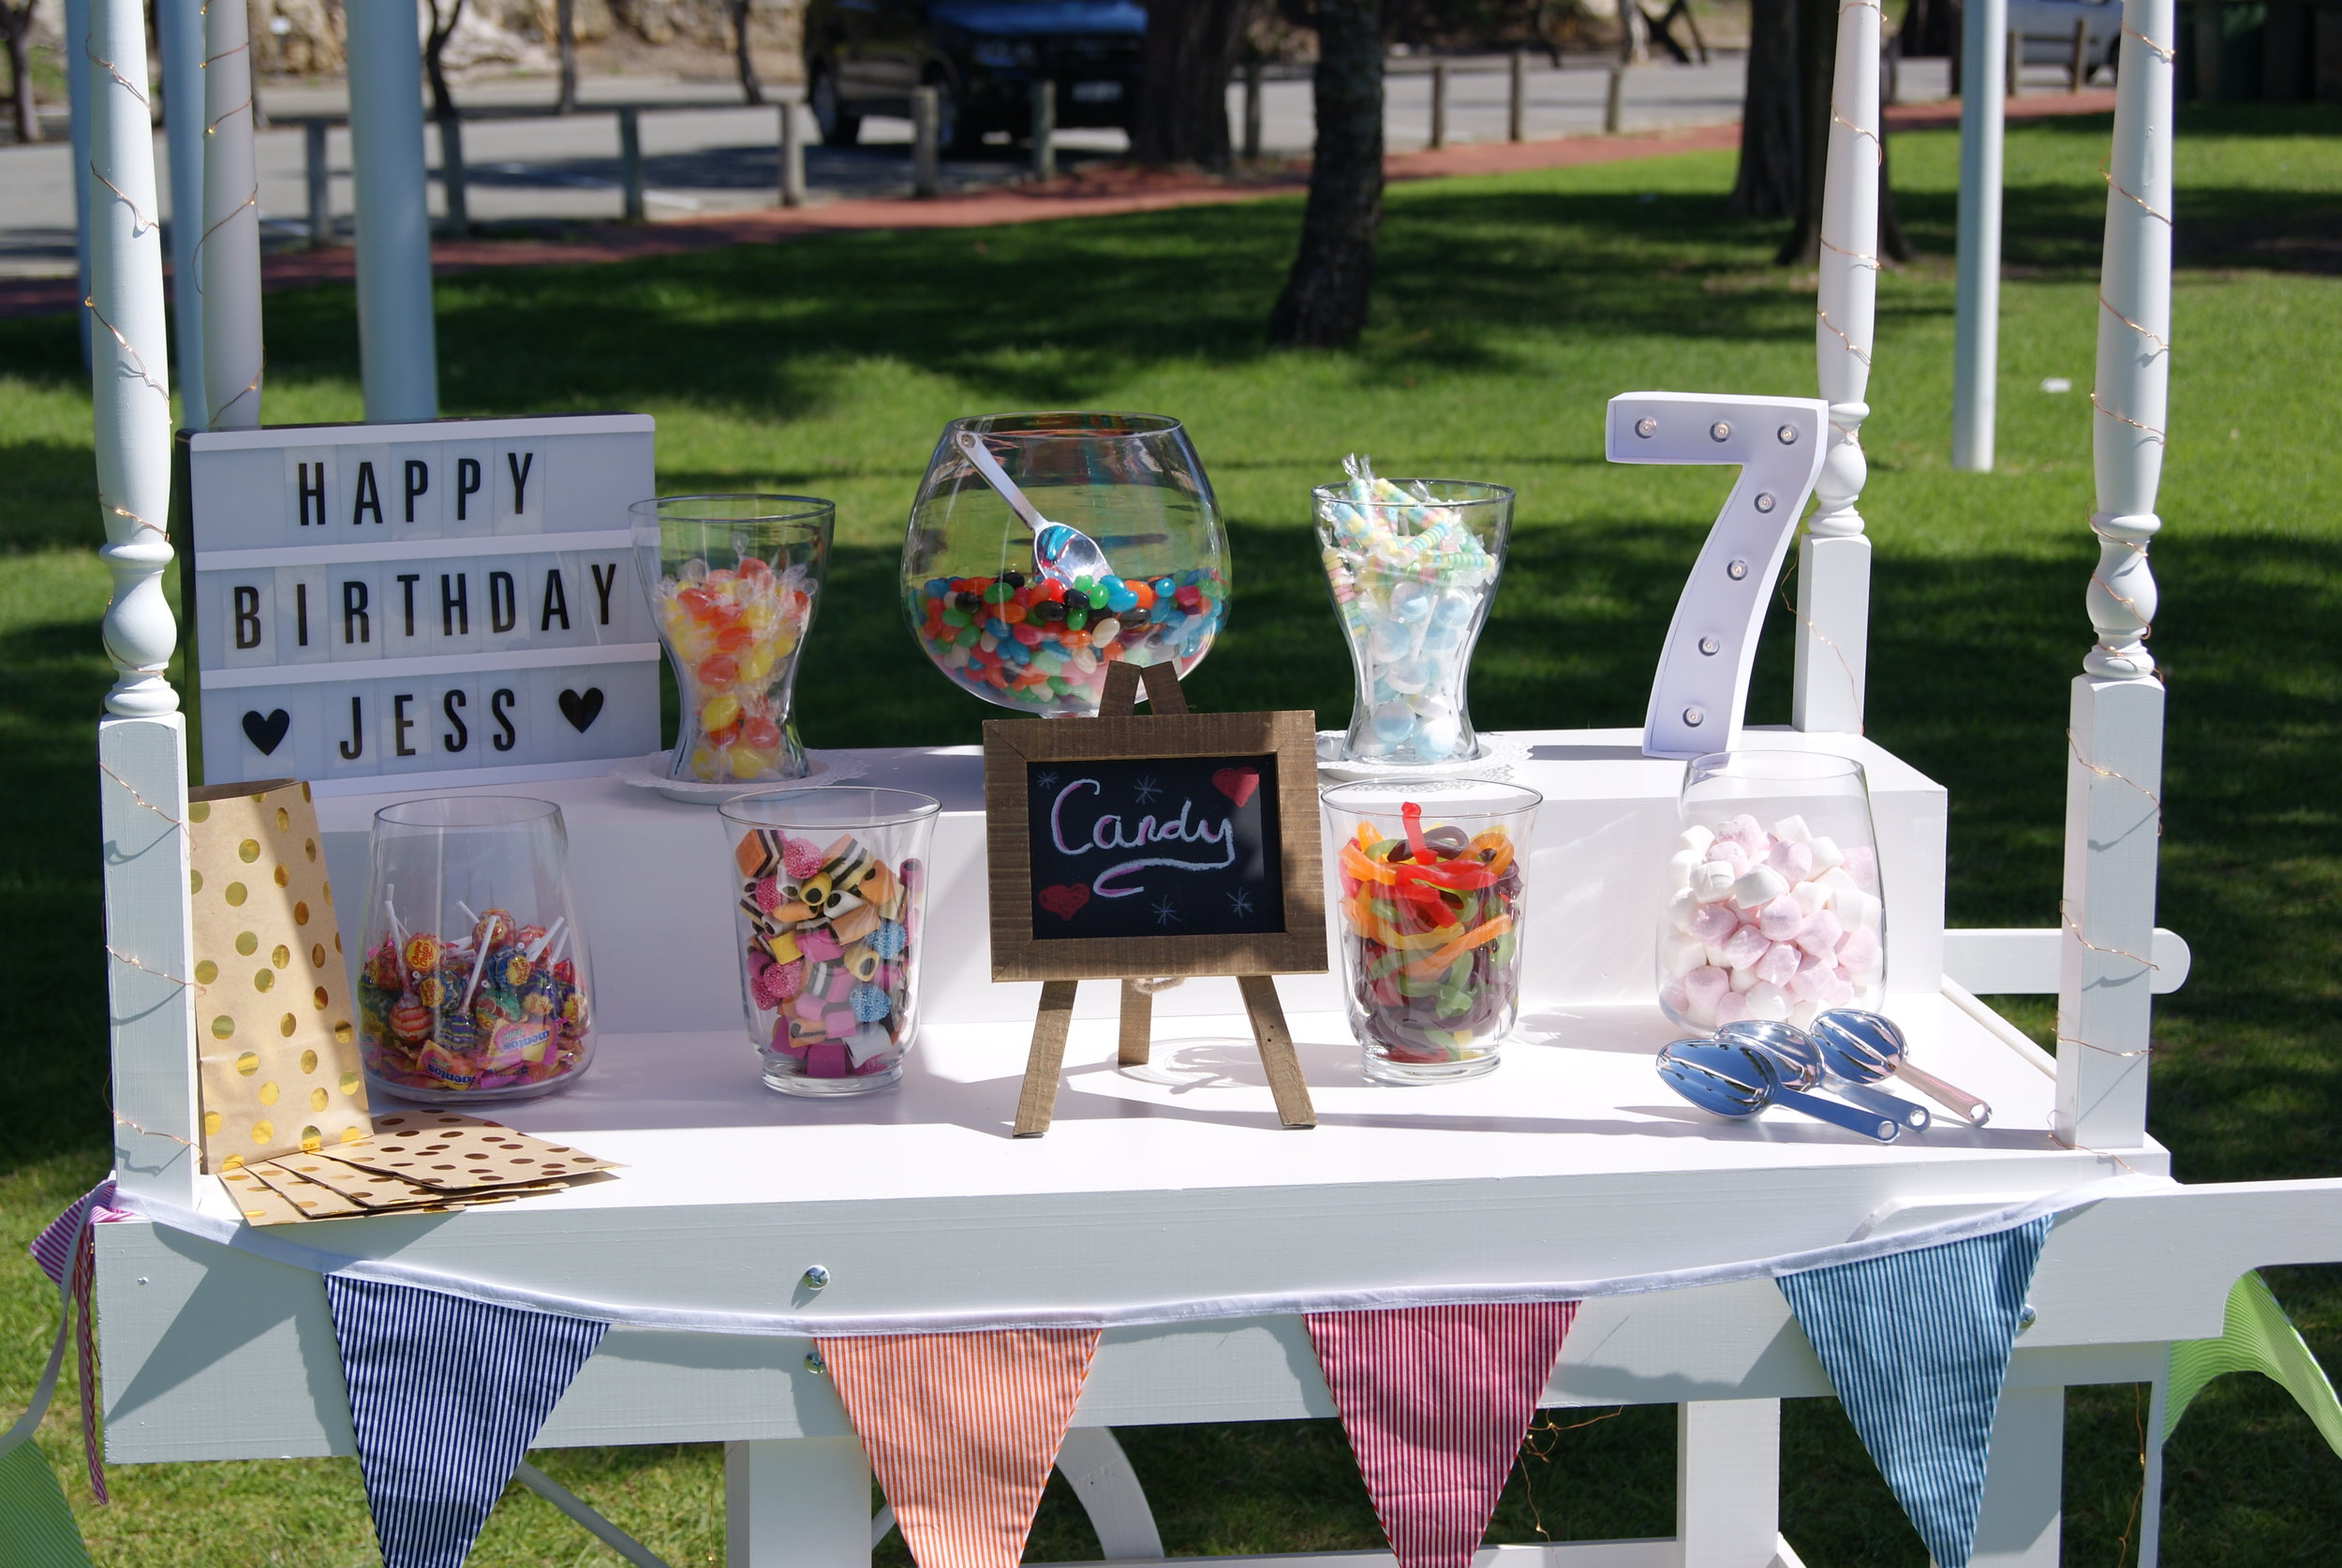 Birthday-candy-cart-hire-little-lolly-cart.JPG